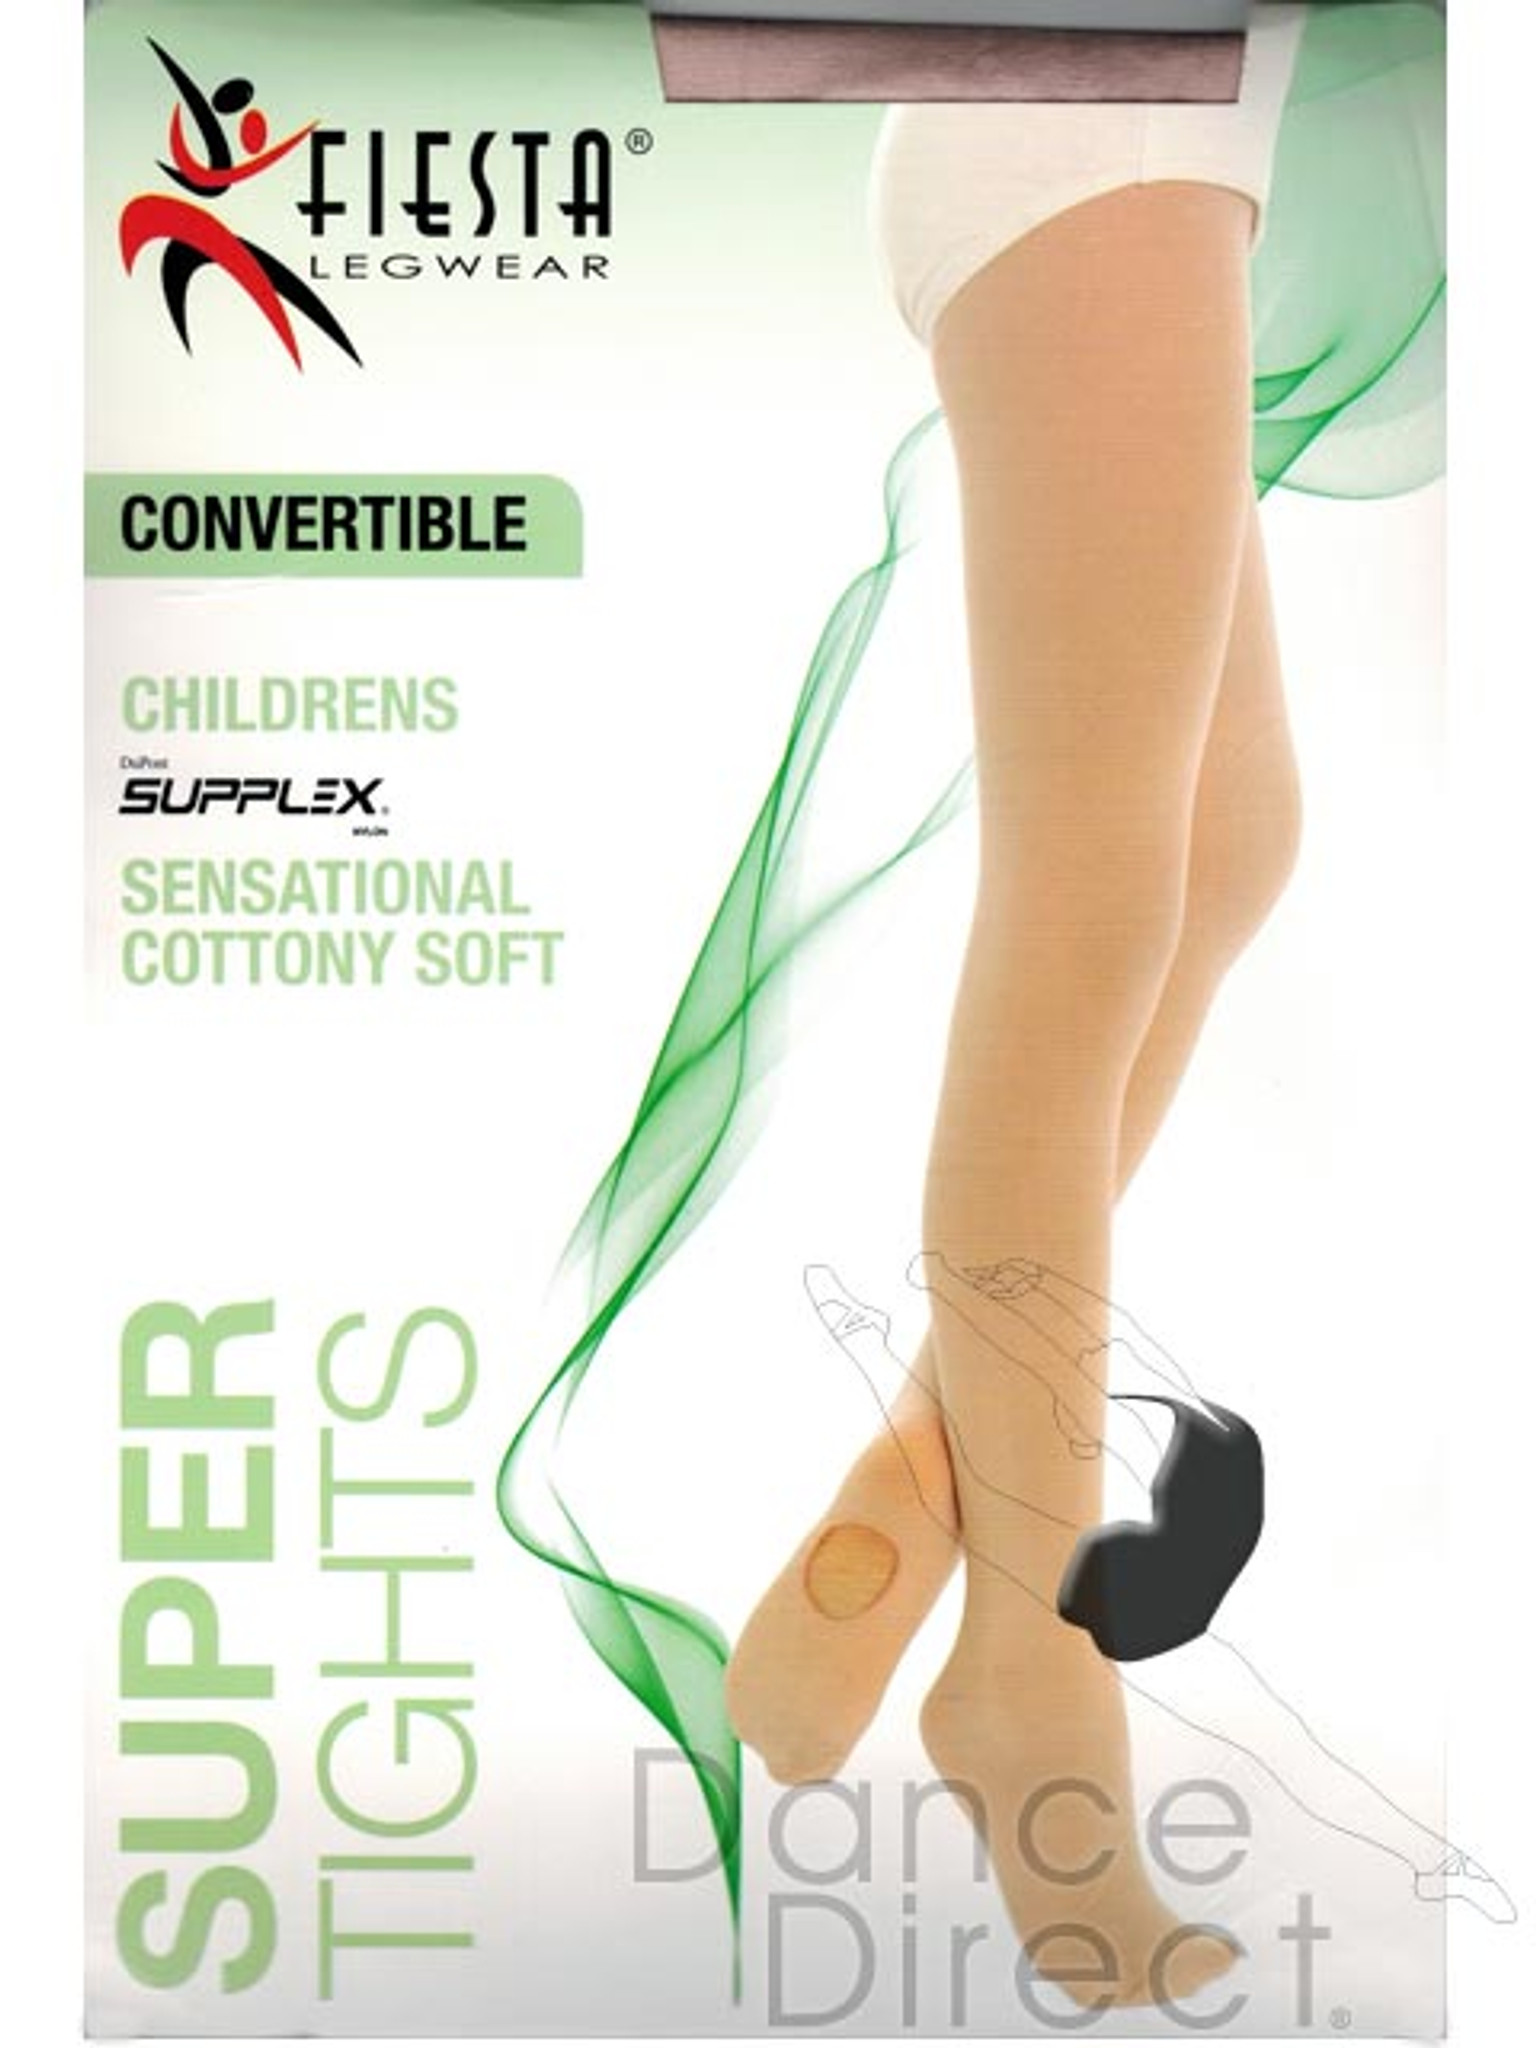 9dd1271bd4f42e Fiesta Matte Supplex Super Convertible Tights - Girls - DANCE DIRECT®